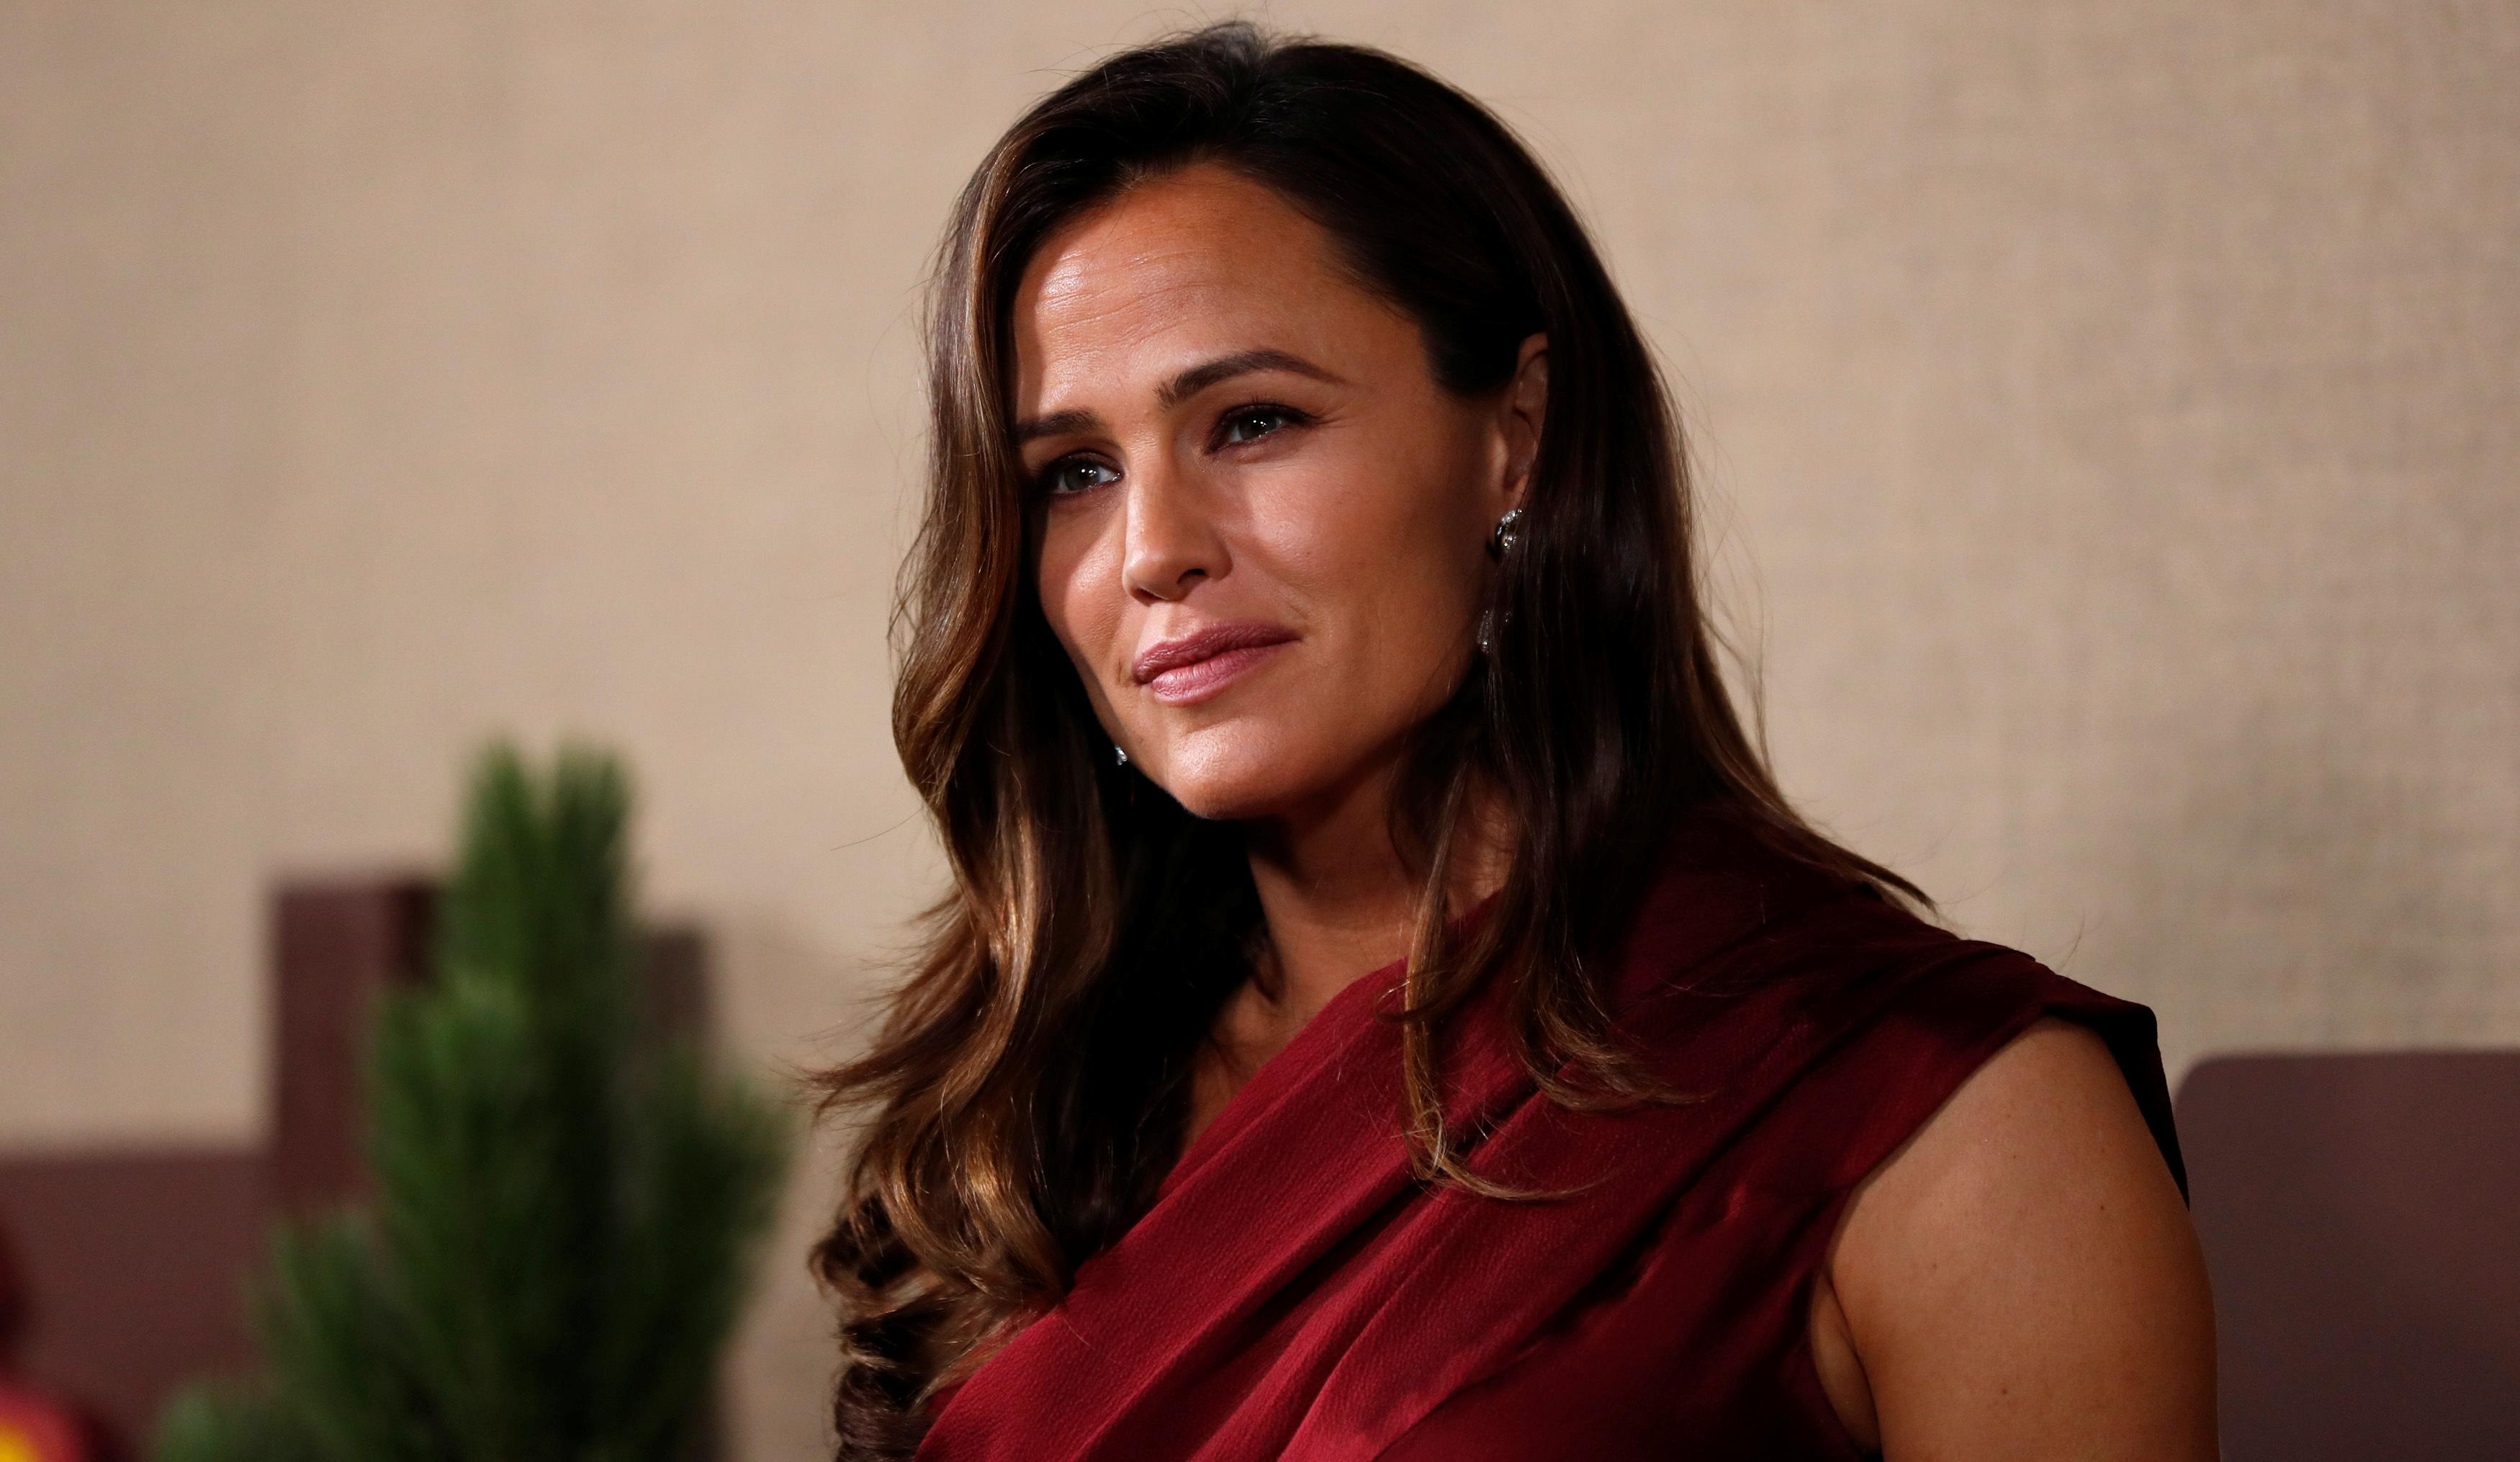 Jennifer Garner on the 'circus' of being married to Ben Affleck